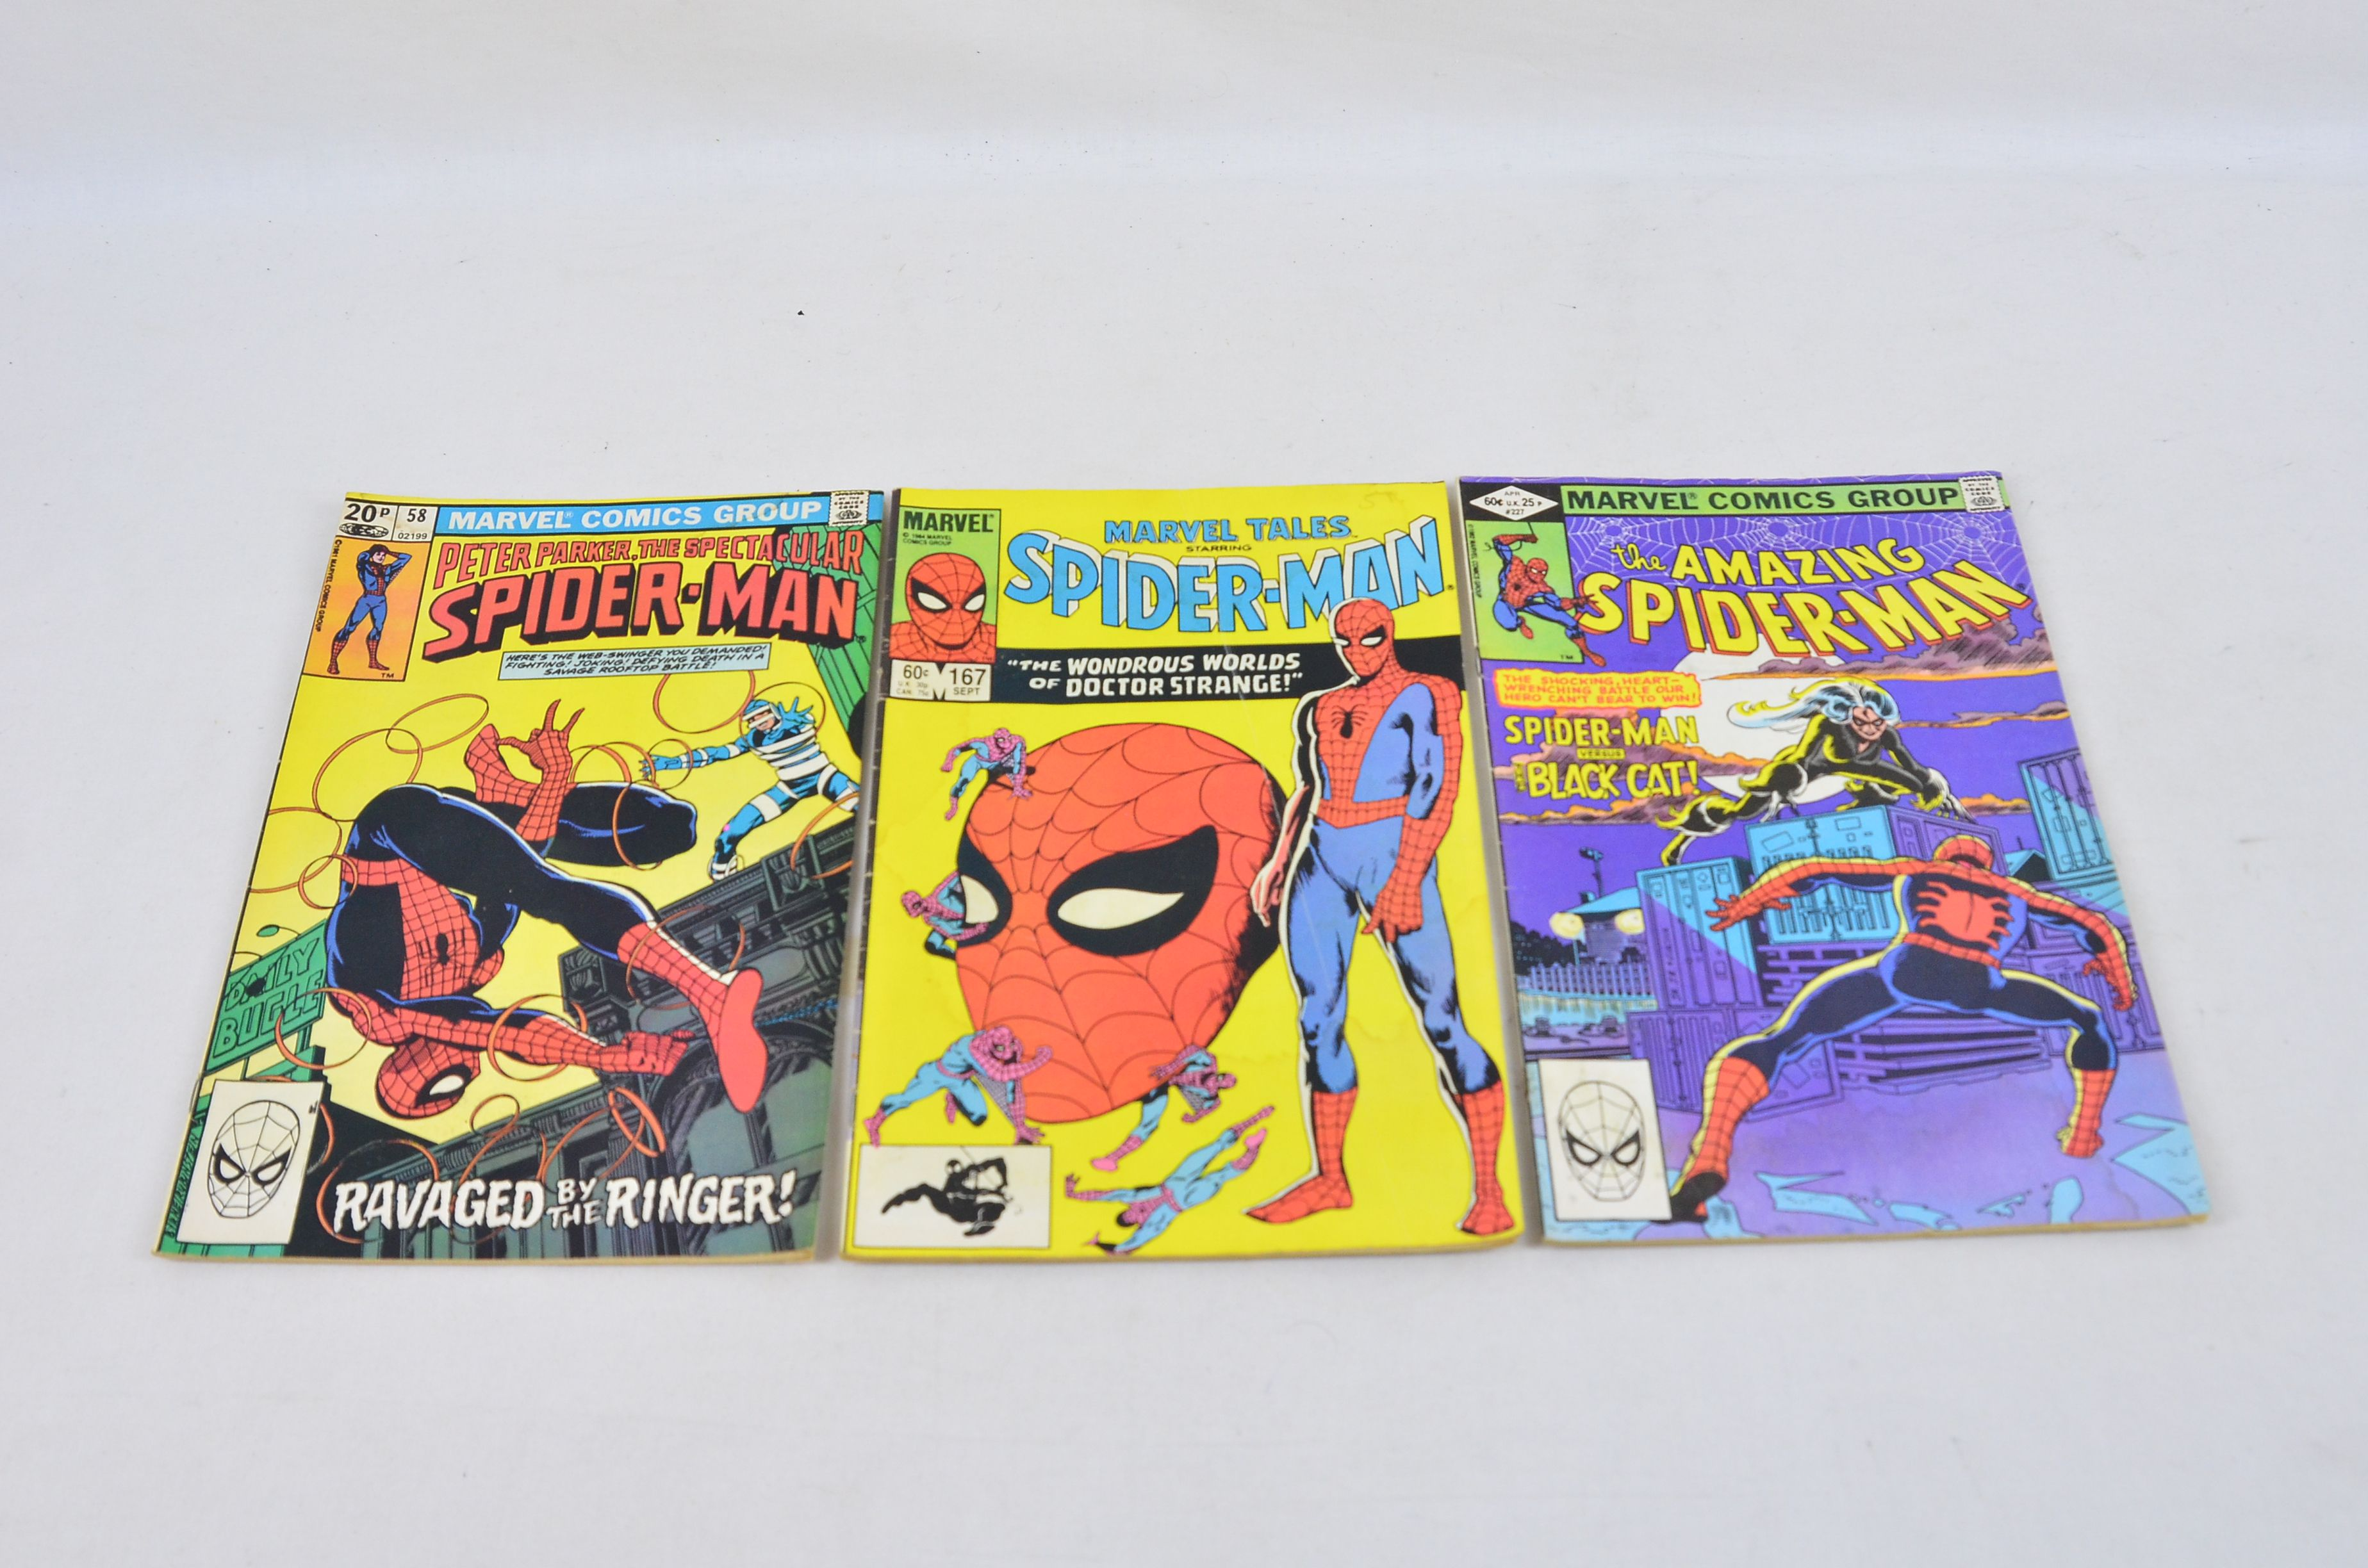 Vintage Marvel Comics Group Peter Parker, The Spectacular Spider-Man Collectable